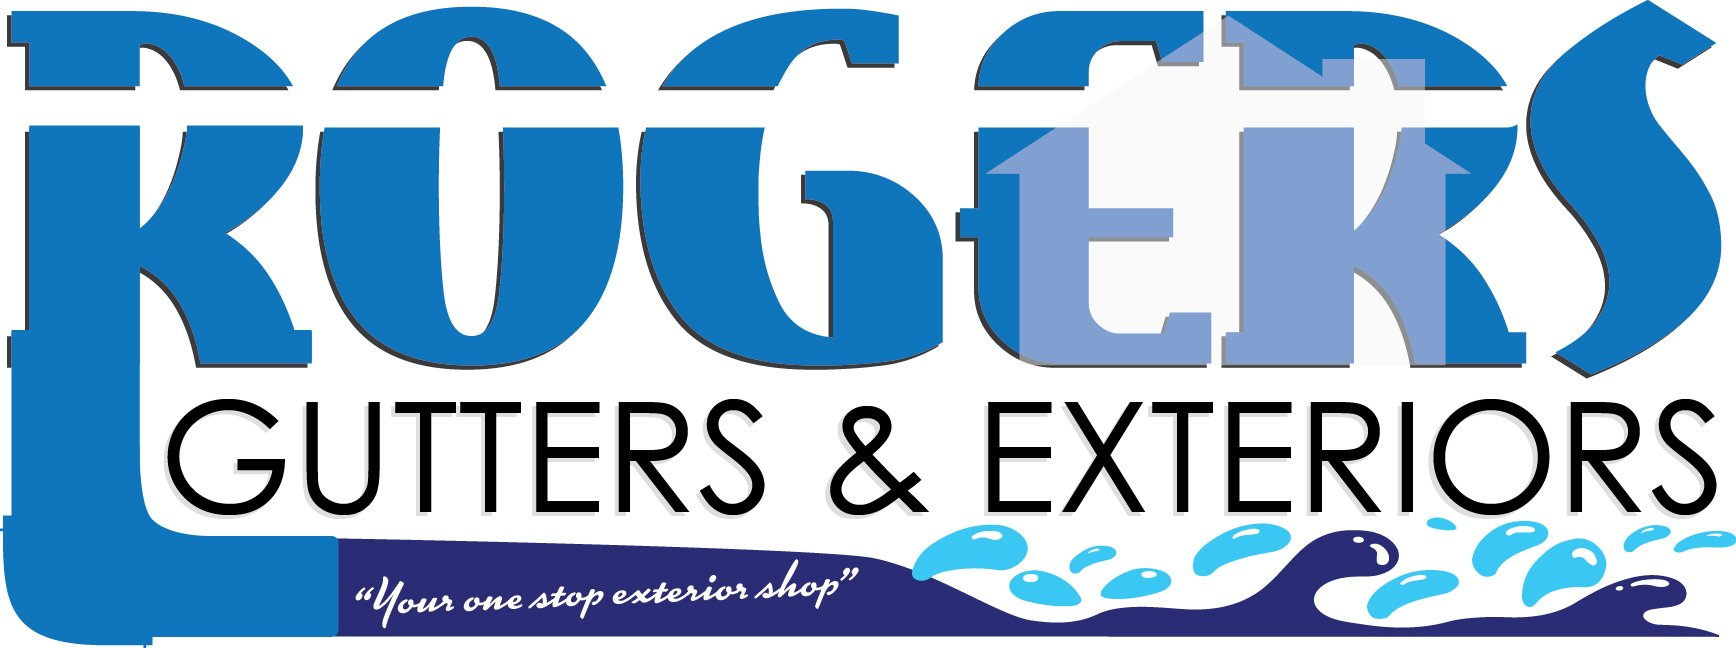 Rogers Gutters & Exteriors